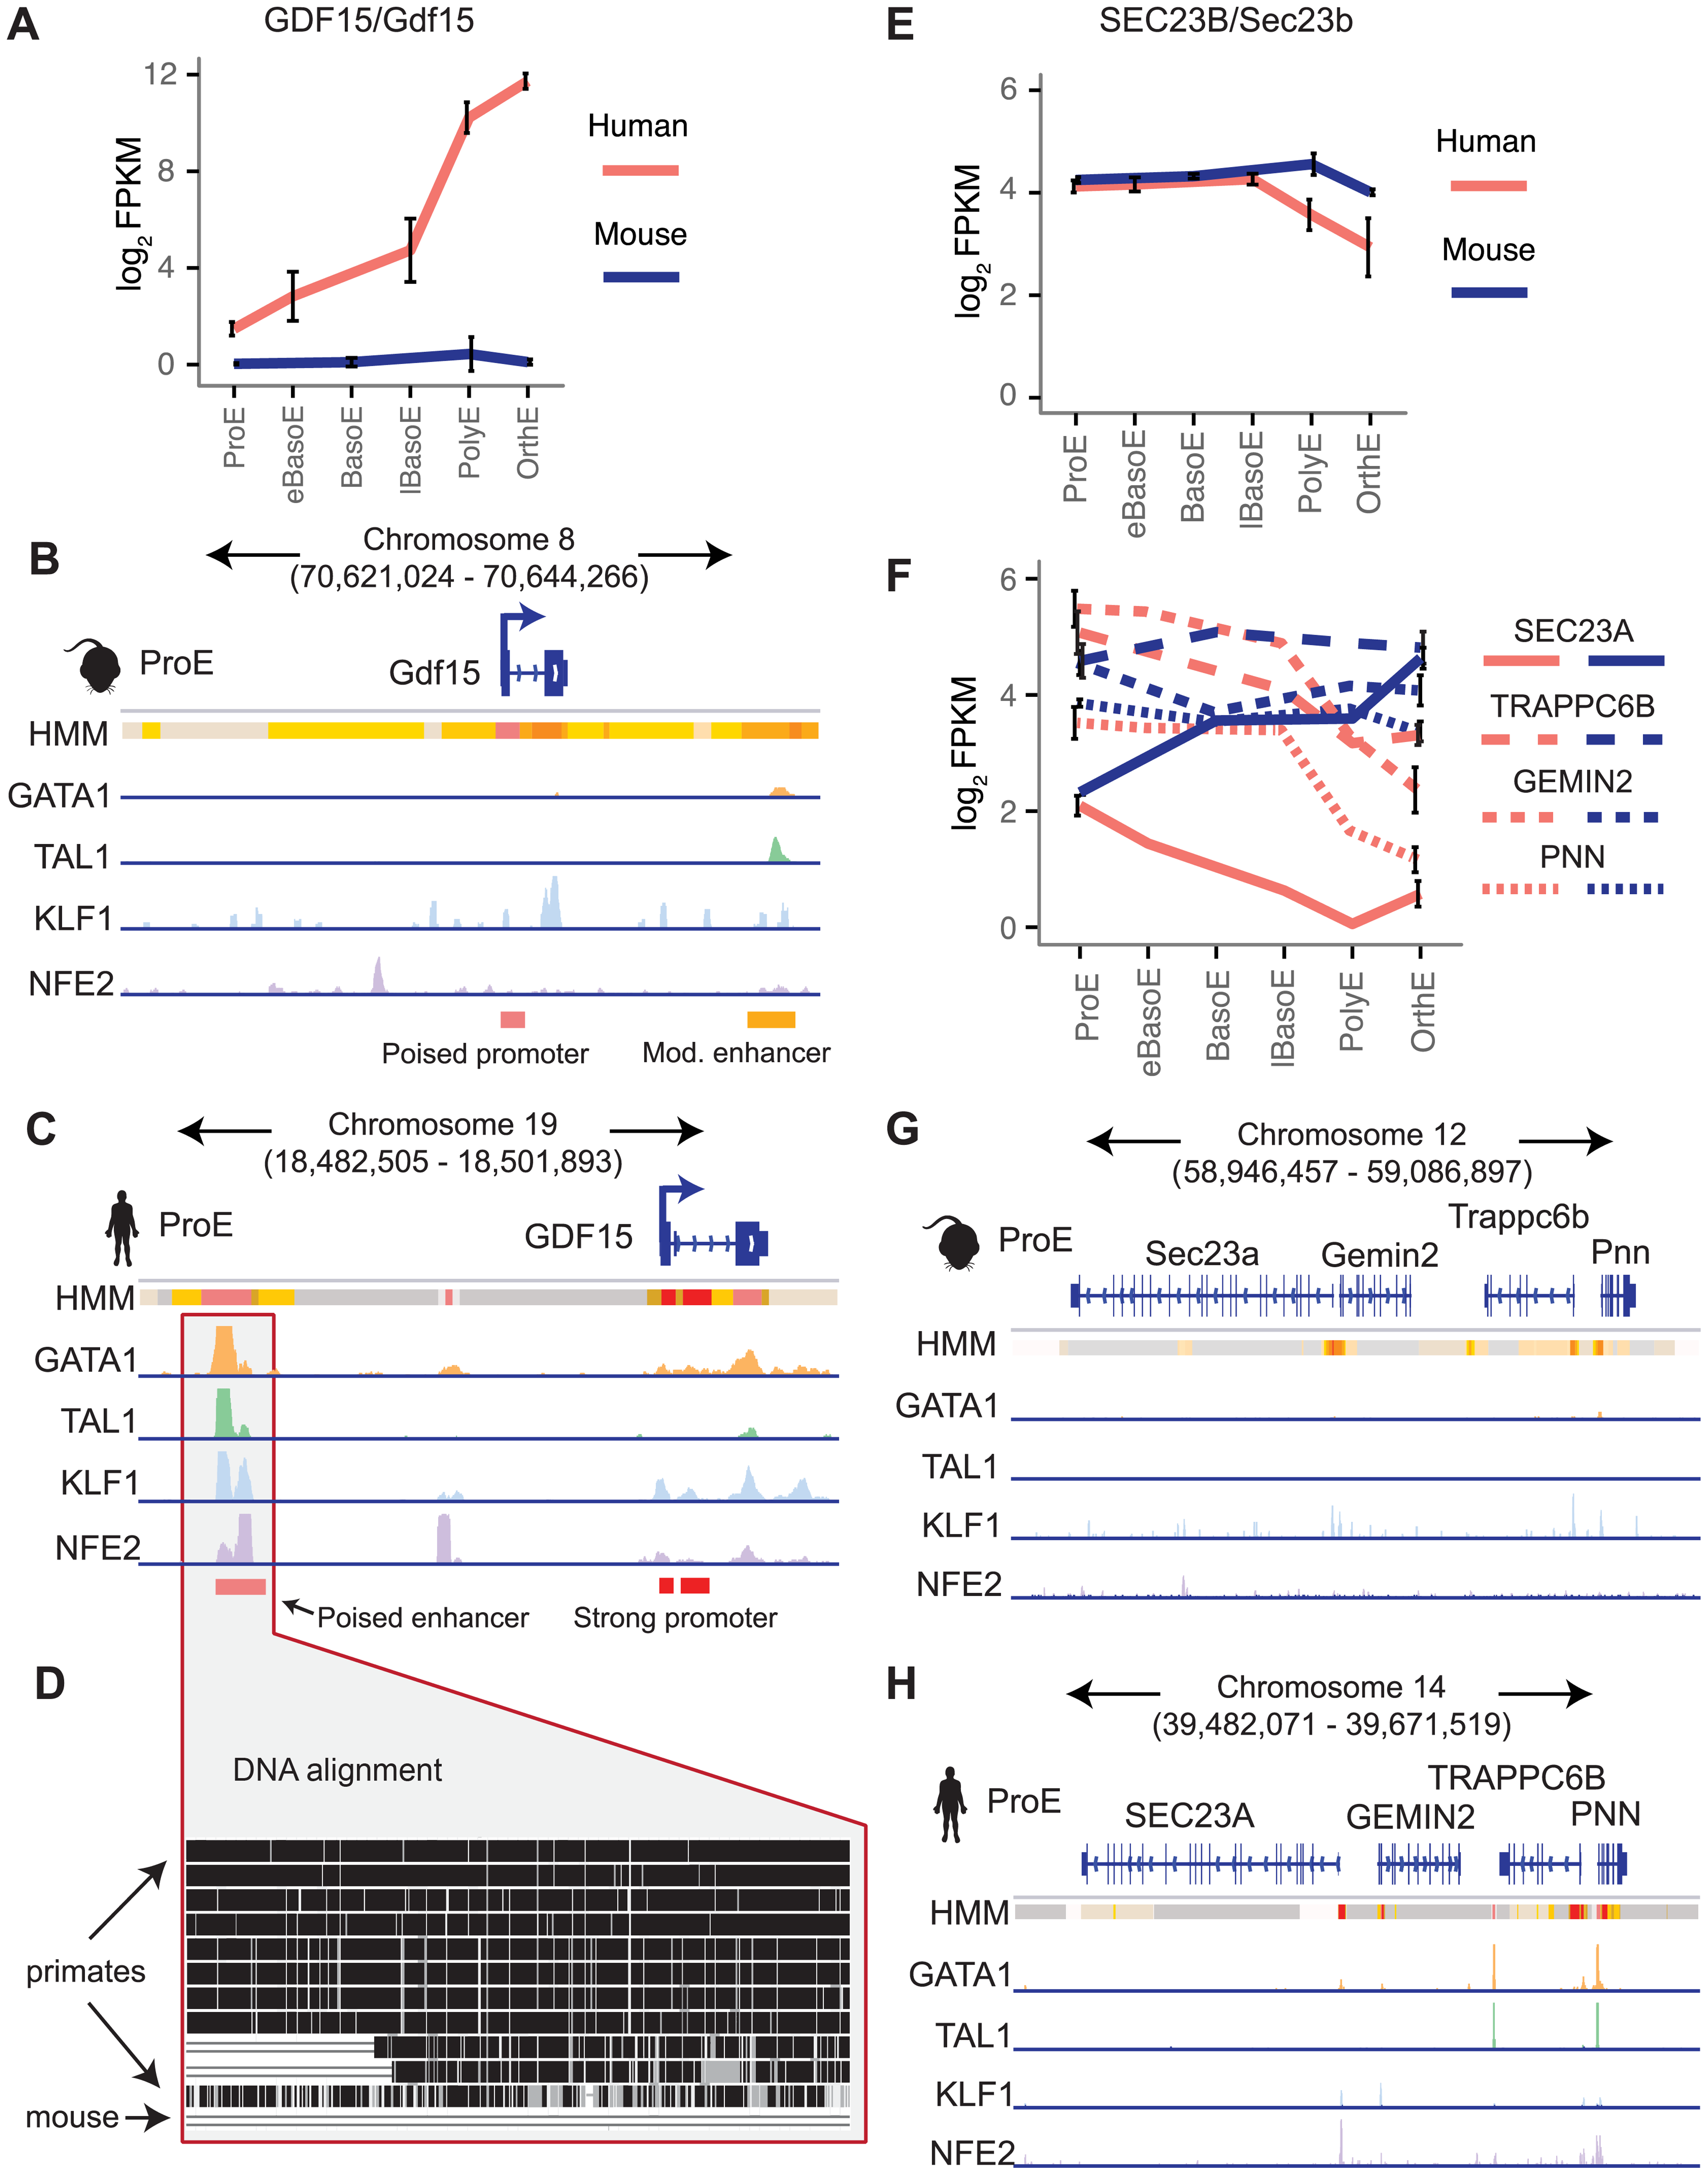 Species-specific expression of <i>GDF15</i> is driven by a human-specific element and the region around <i>SEC23A</i> in humans, but not mouse, is repressed.